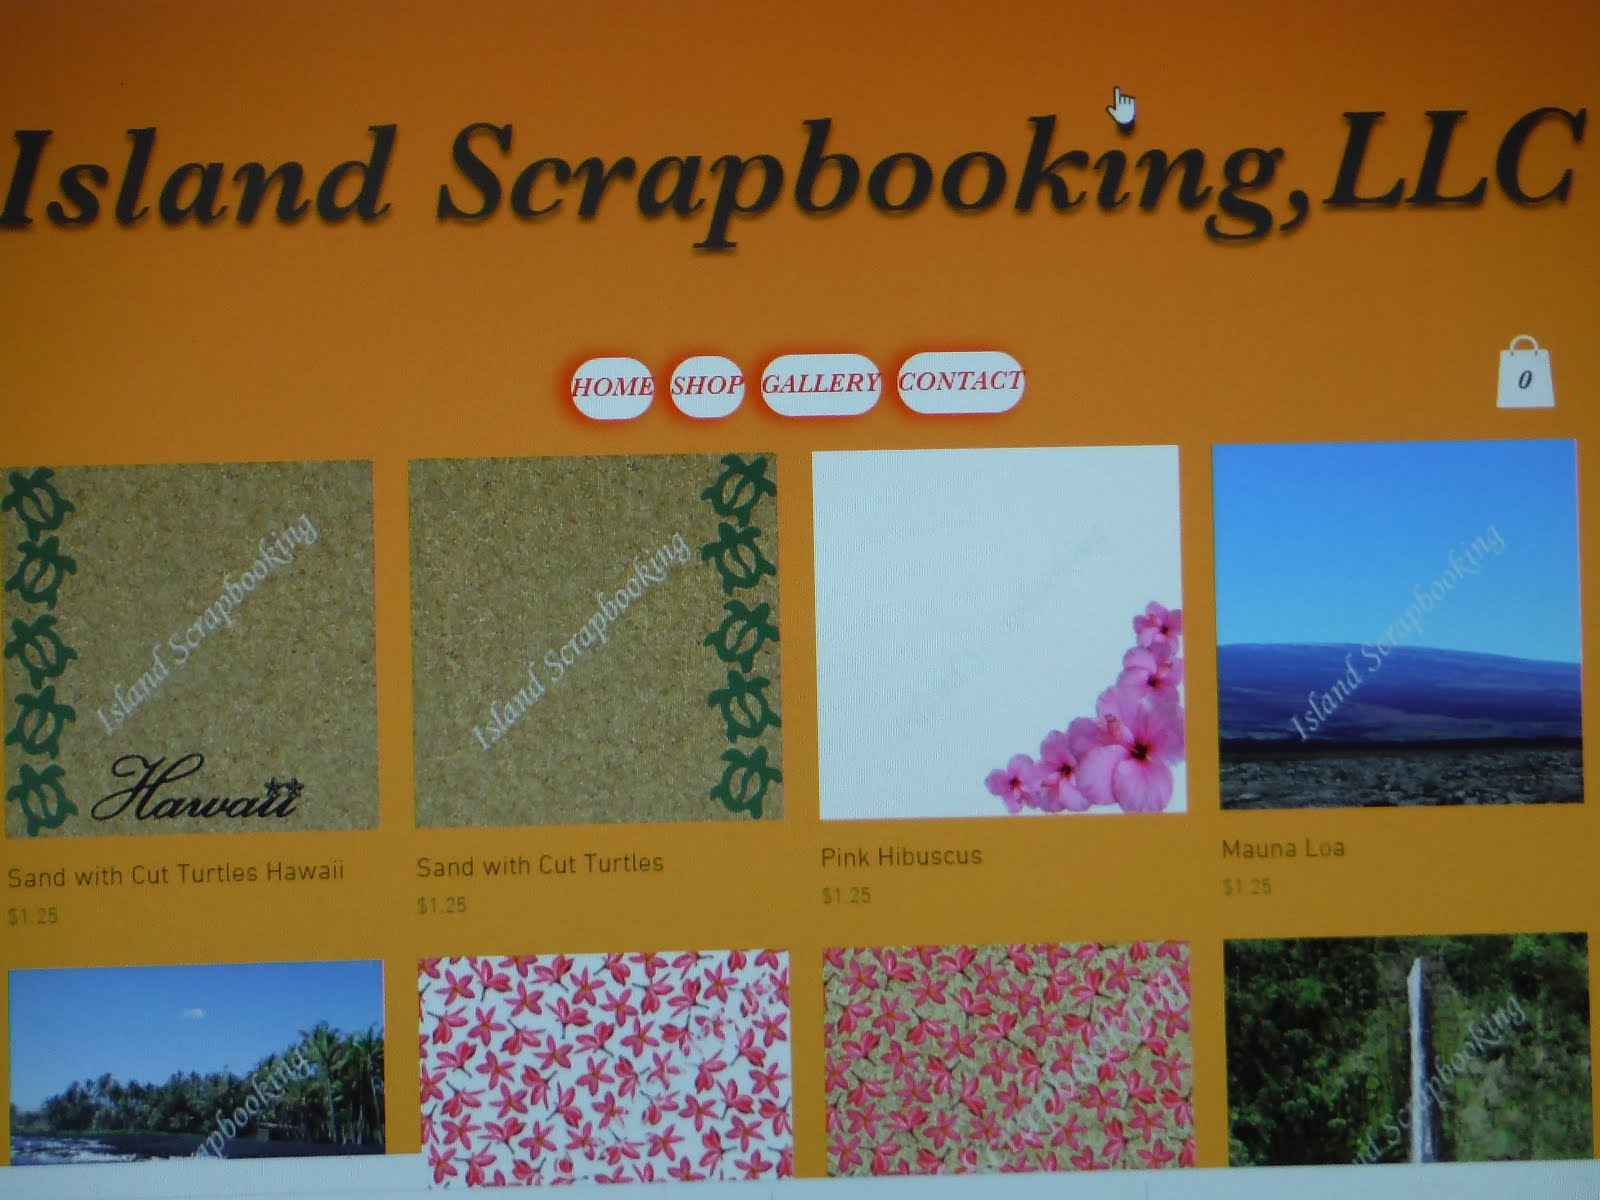 Island Scrapbooking's New Website